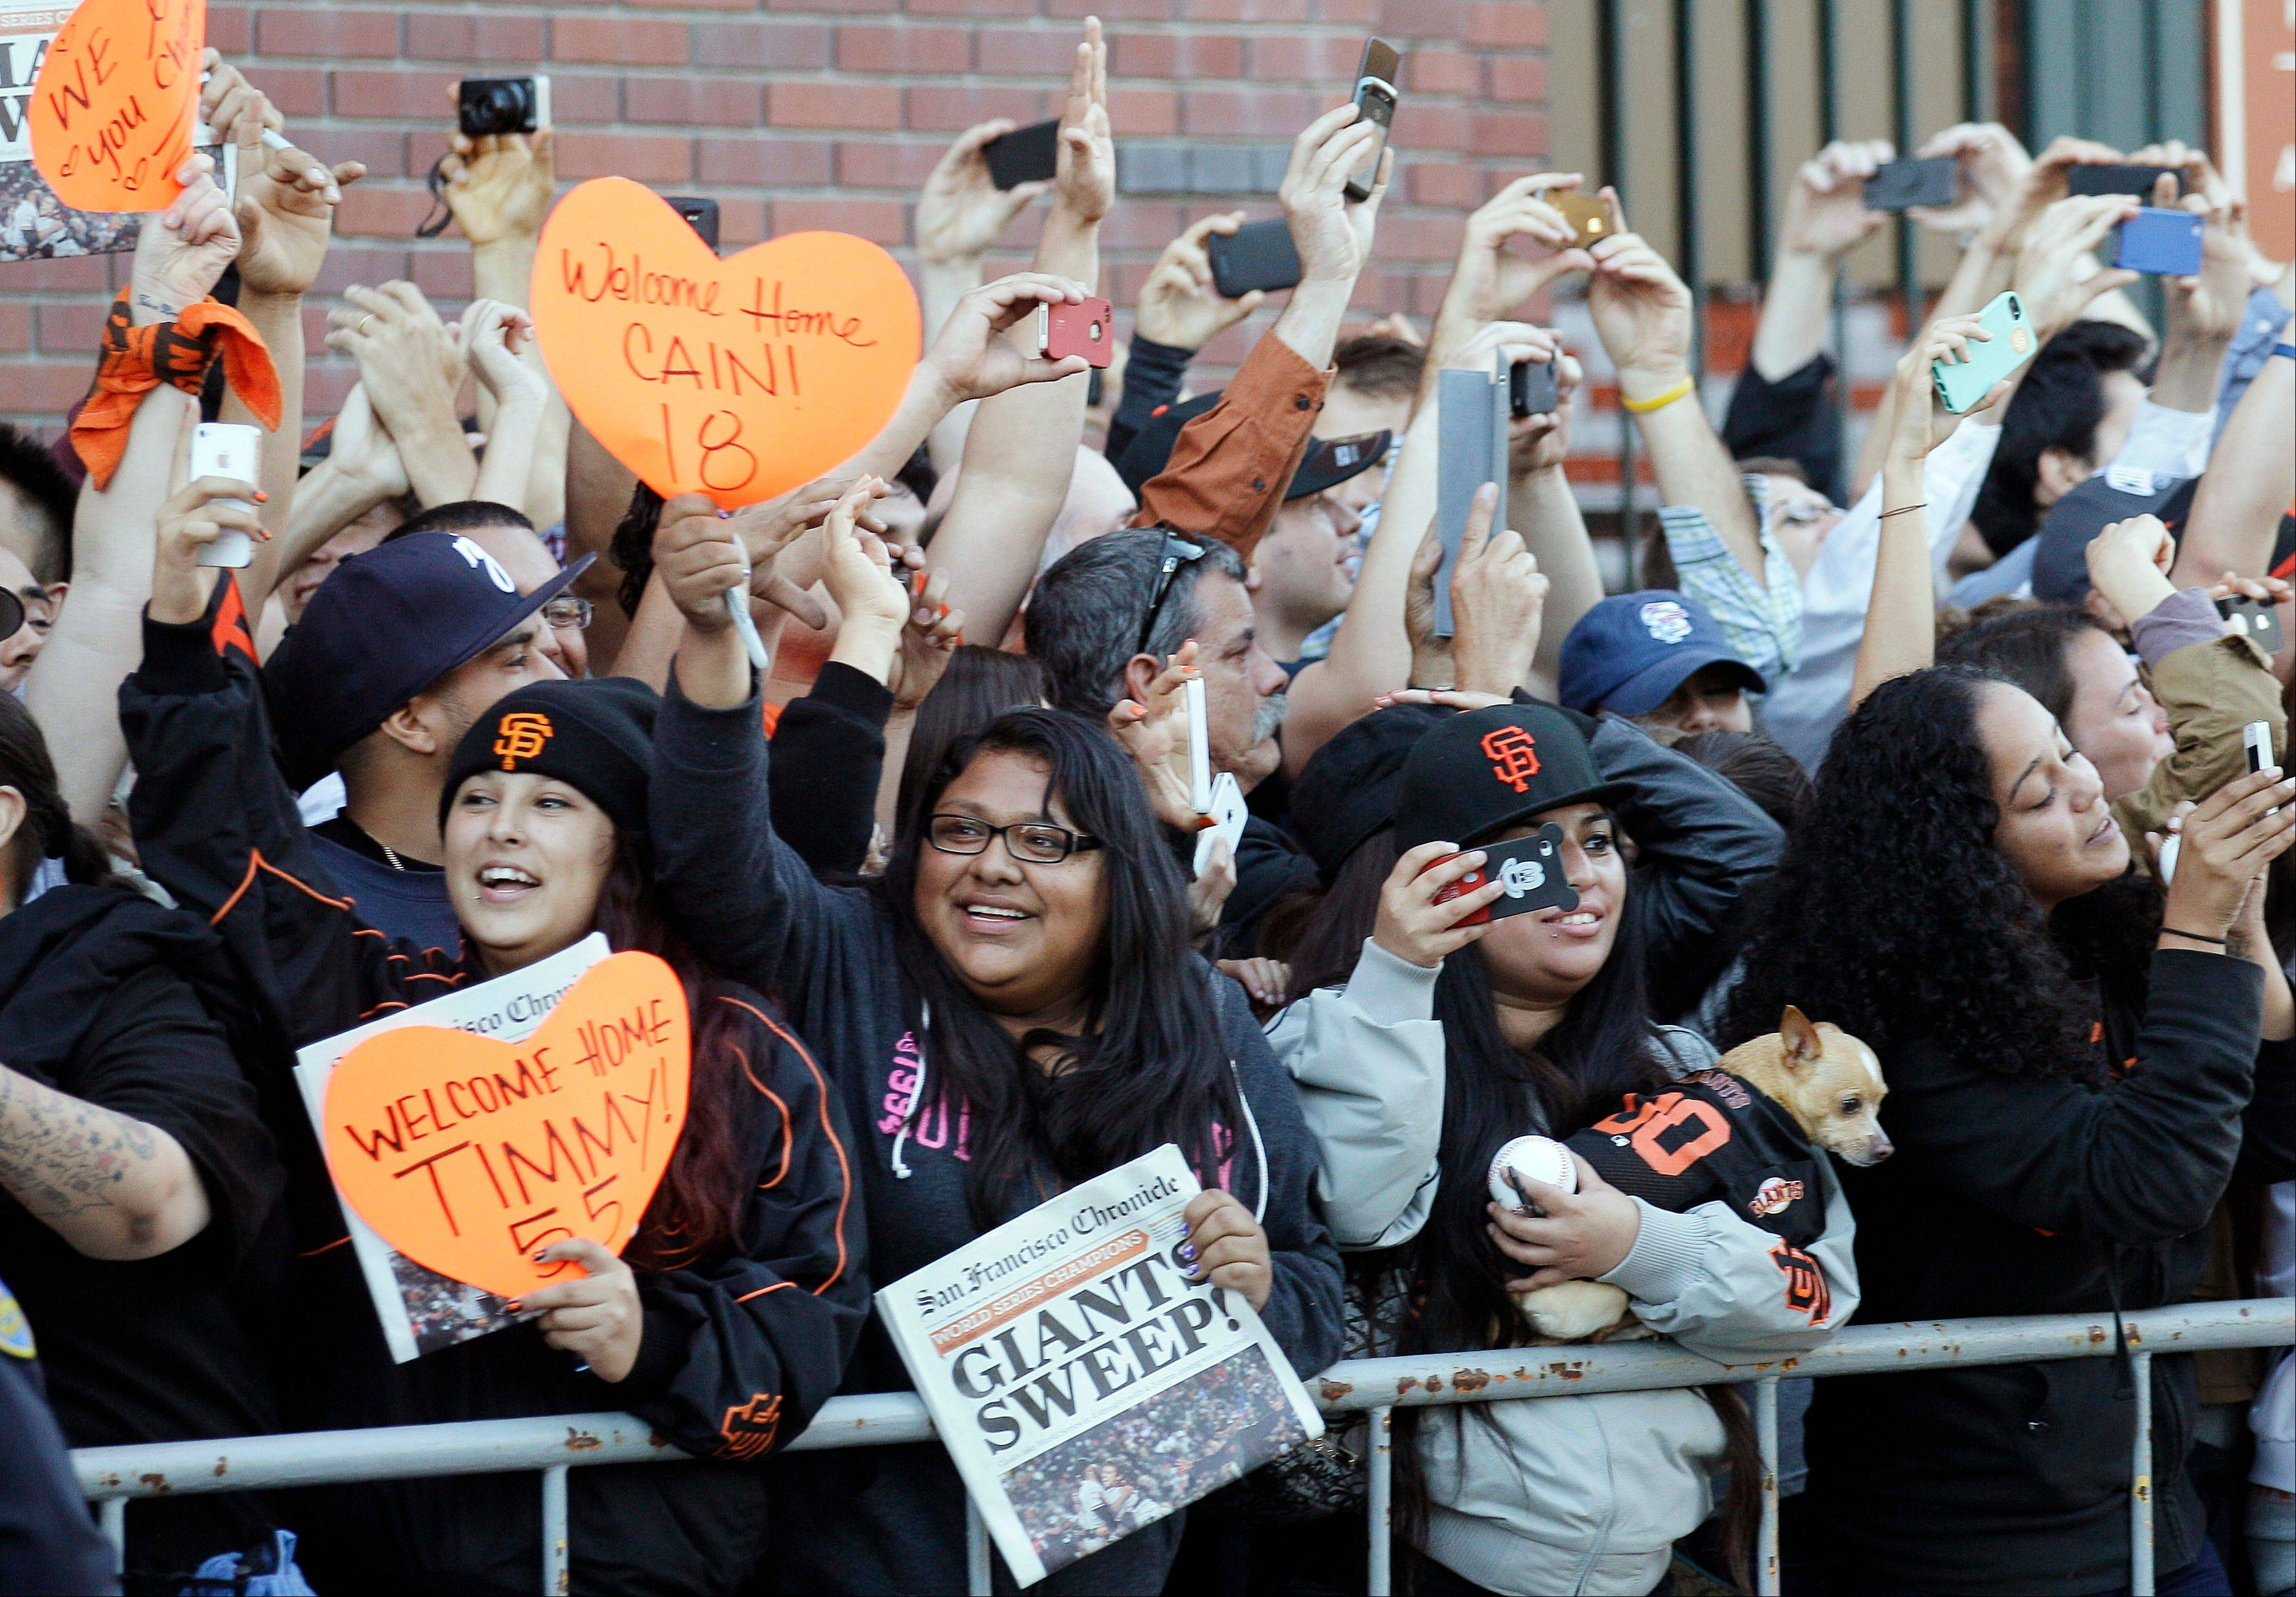 San Francisco Giants fans cheer as the team buses arrive outside of AT&T Park in San Francisco, Monday, Oct. 29, 2012. The Giants defeated the Detroit Tigers to win baseball's World Series.